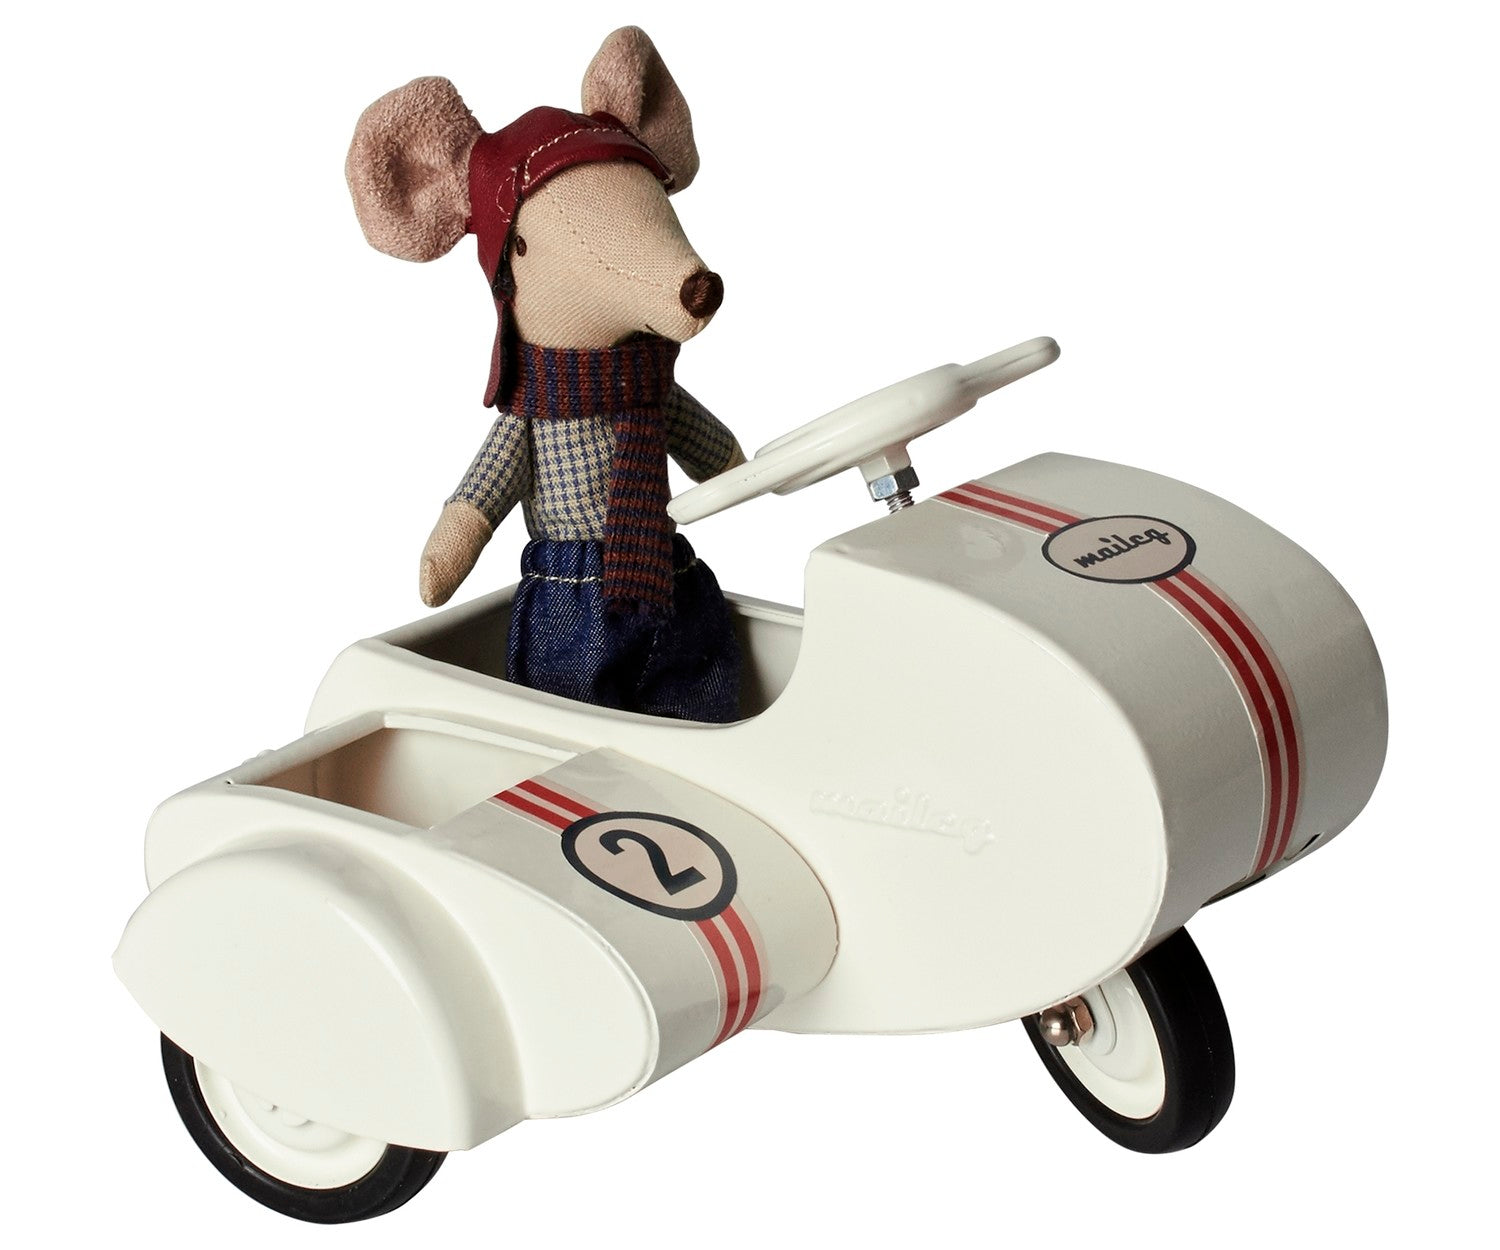 Metal Scooter with Sidecar - Amy Berry Home